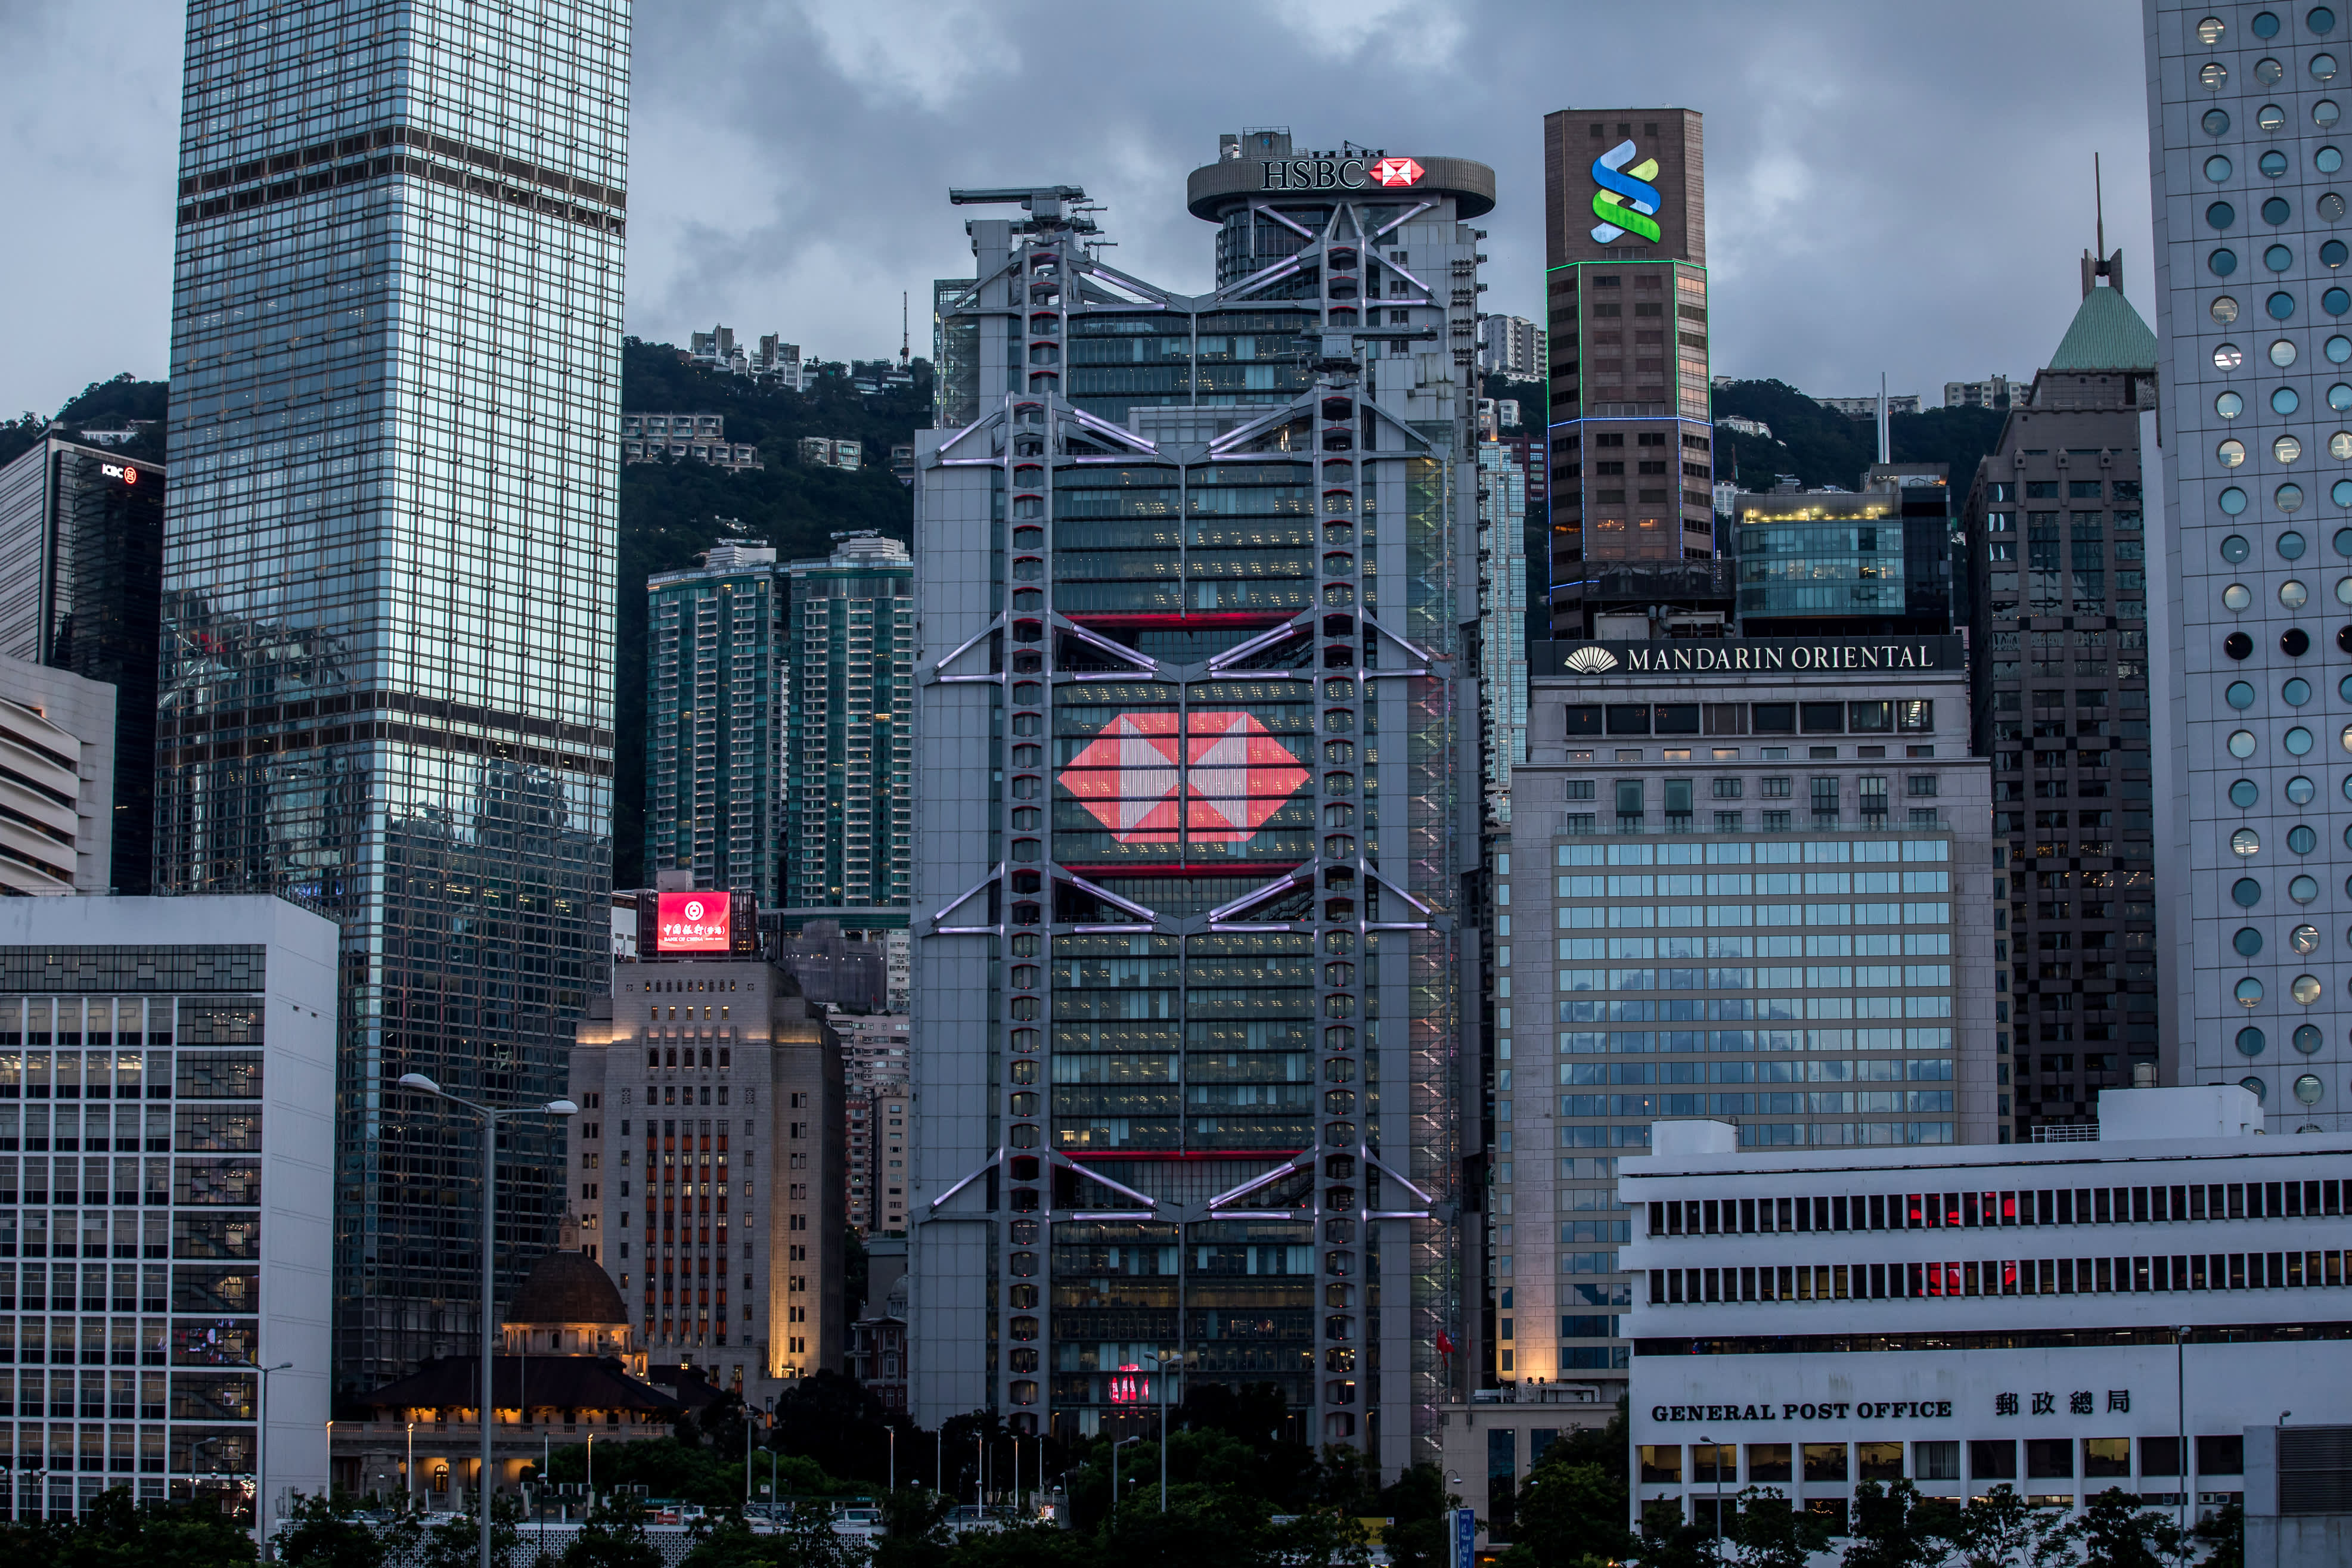 Hong Kong unrest has led to as much as $5 billion in capital outflows, Bank of England says